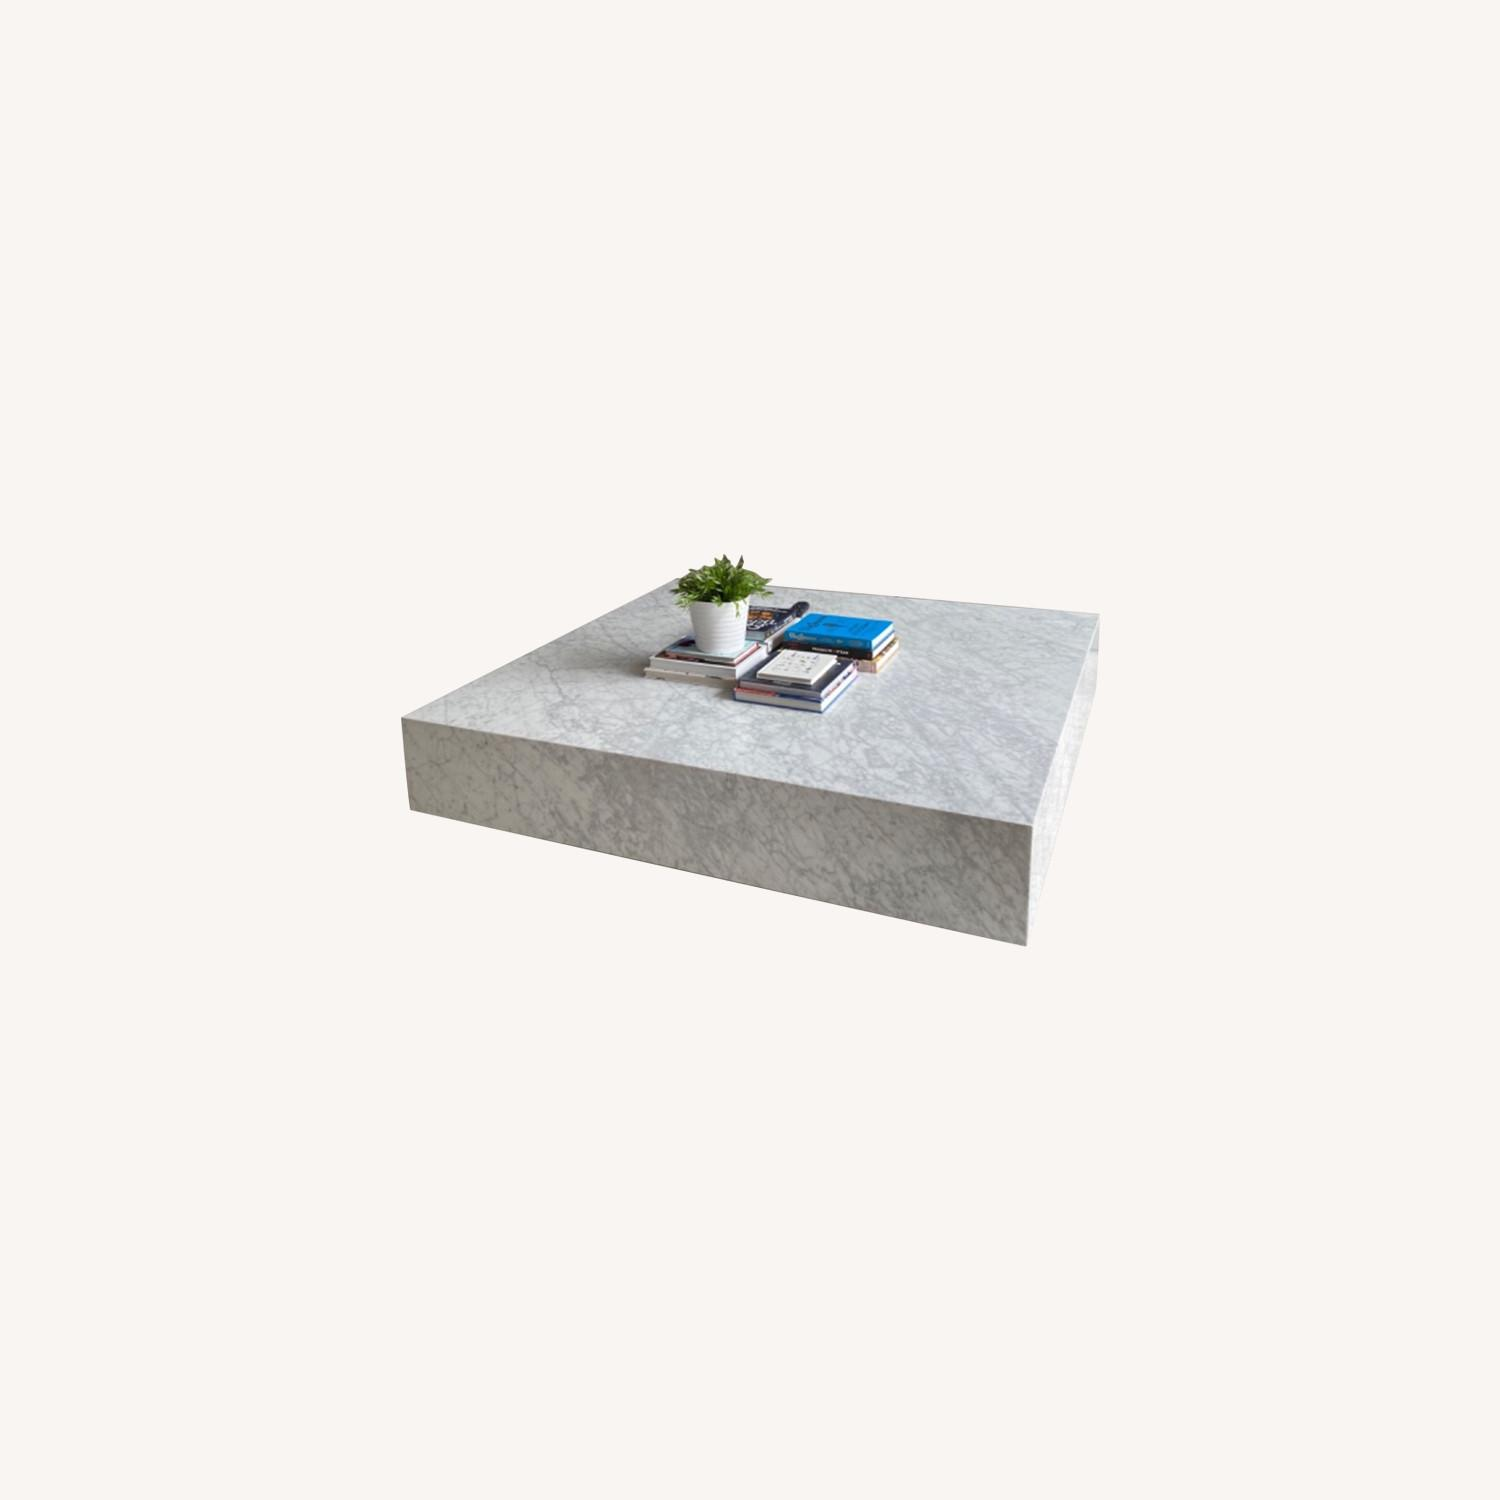 Restoration Hardware White Marble Coffee Table - image-0